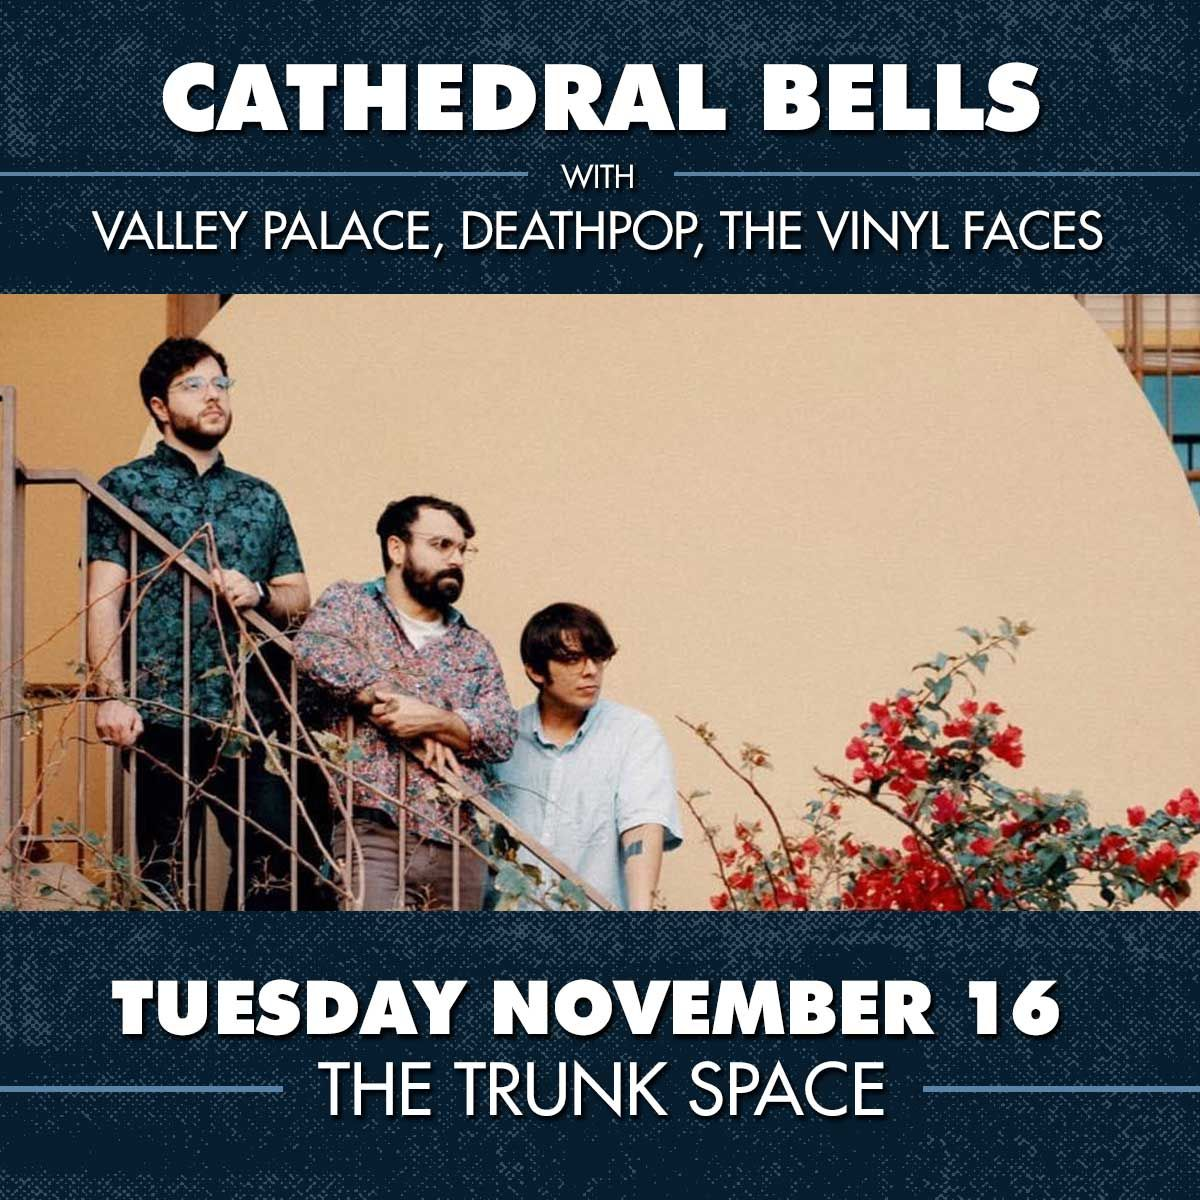 CATHEDRAL BELLS: